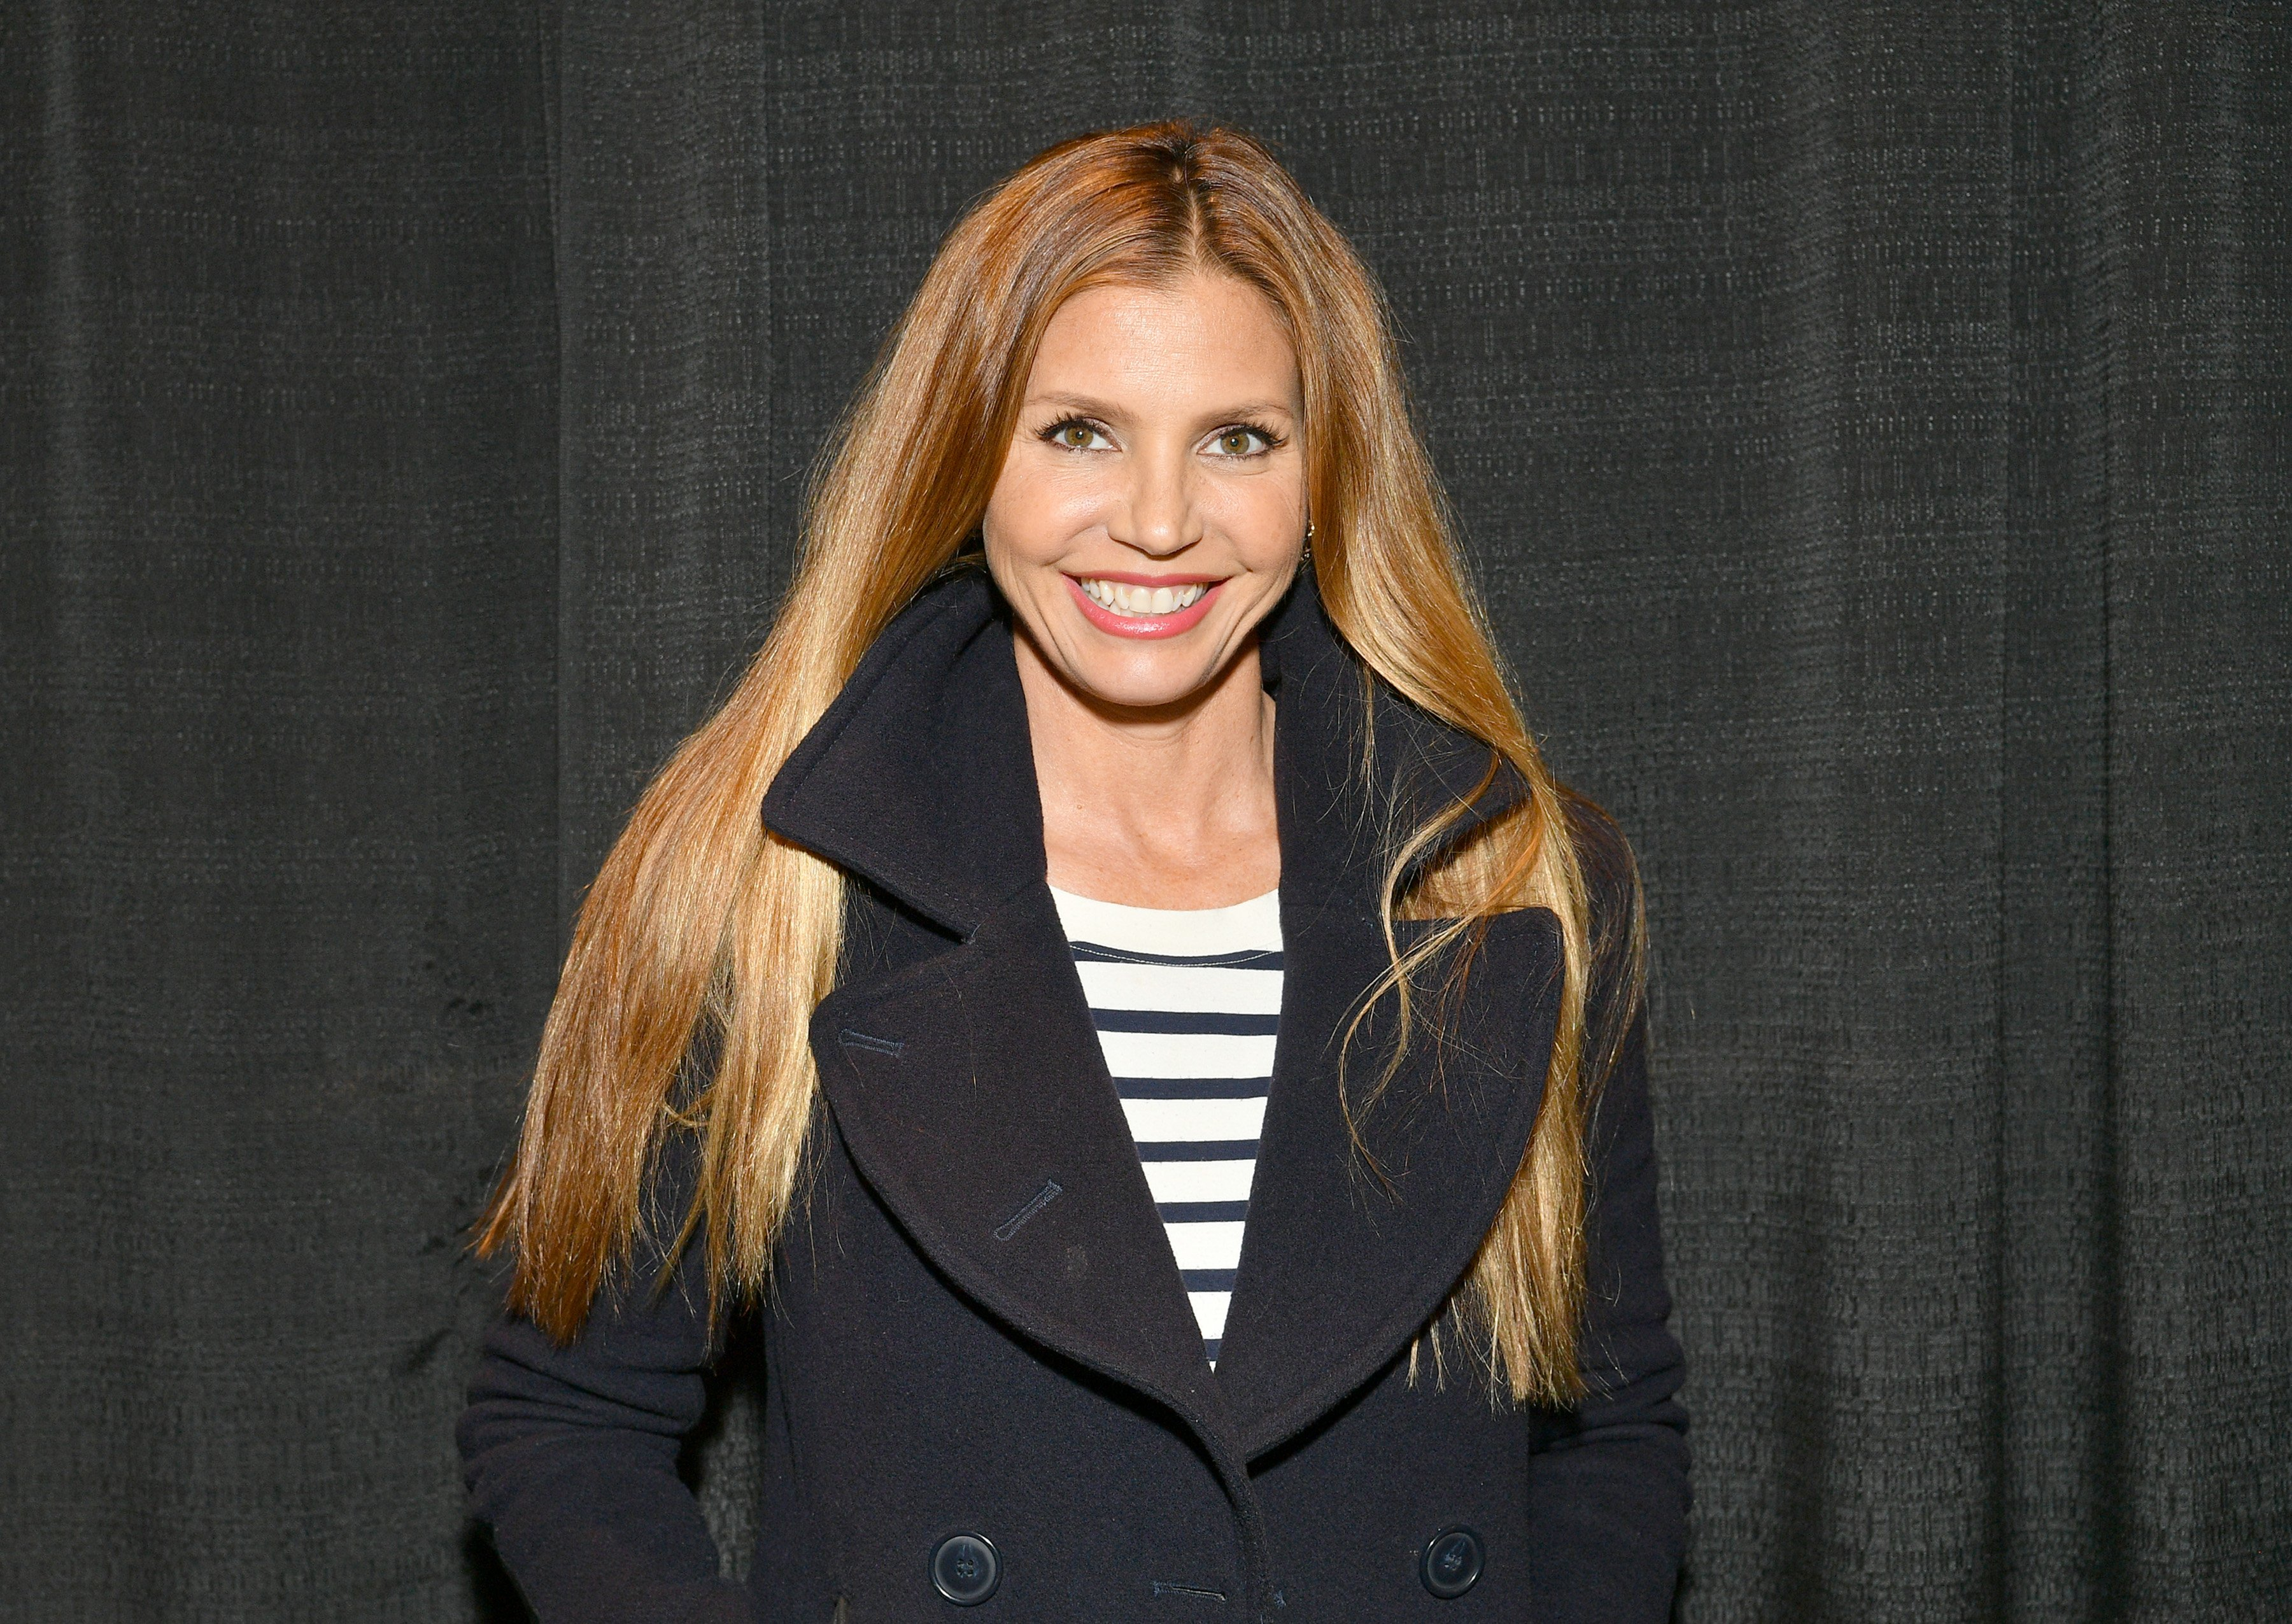 Charisma Carpenter attends the New York Comic Con at Jacob K. Javits Convention Center on October 03, 2019 in New York City | Photo: Getty Images